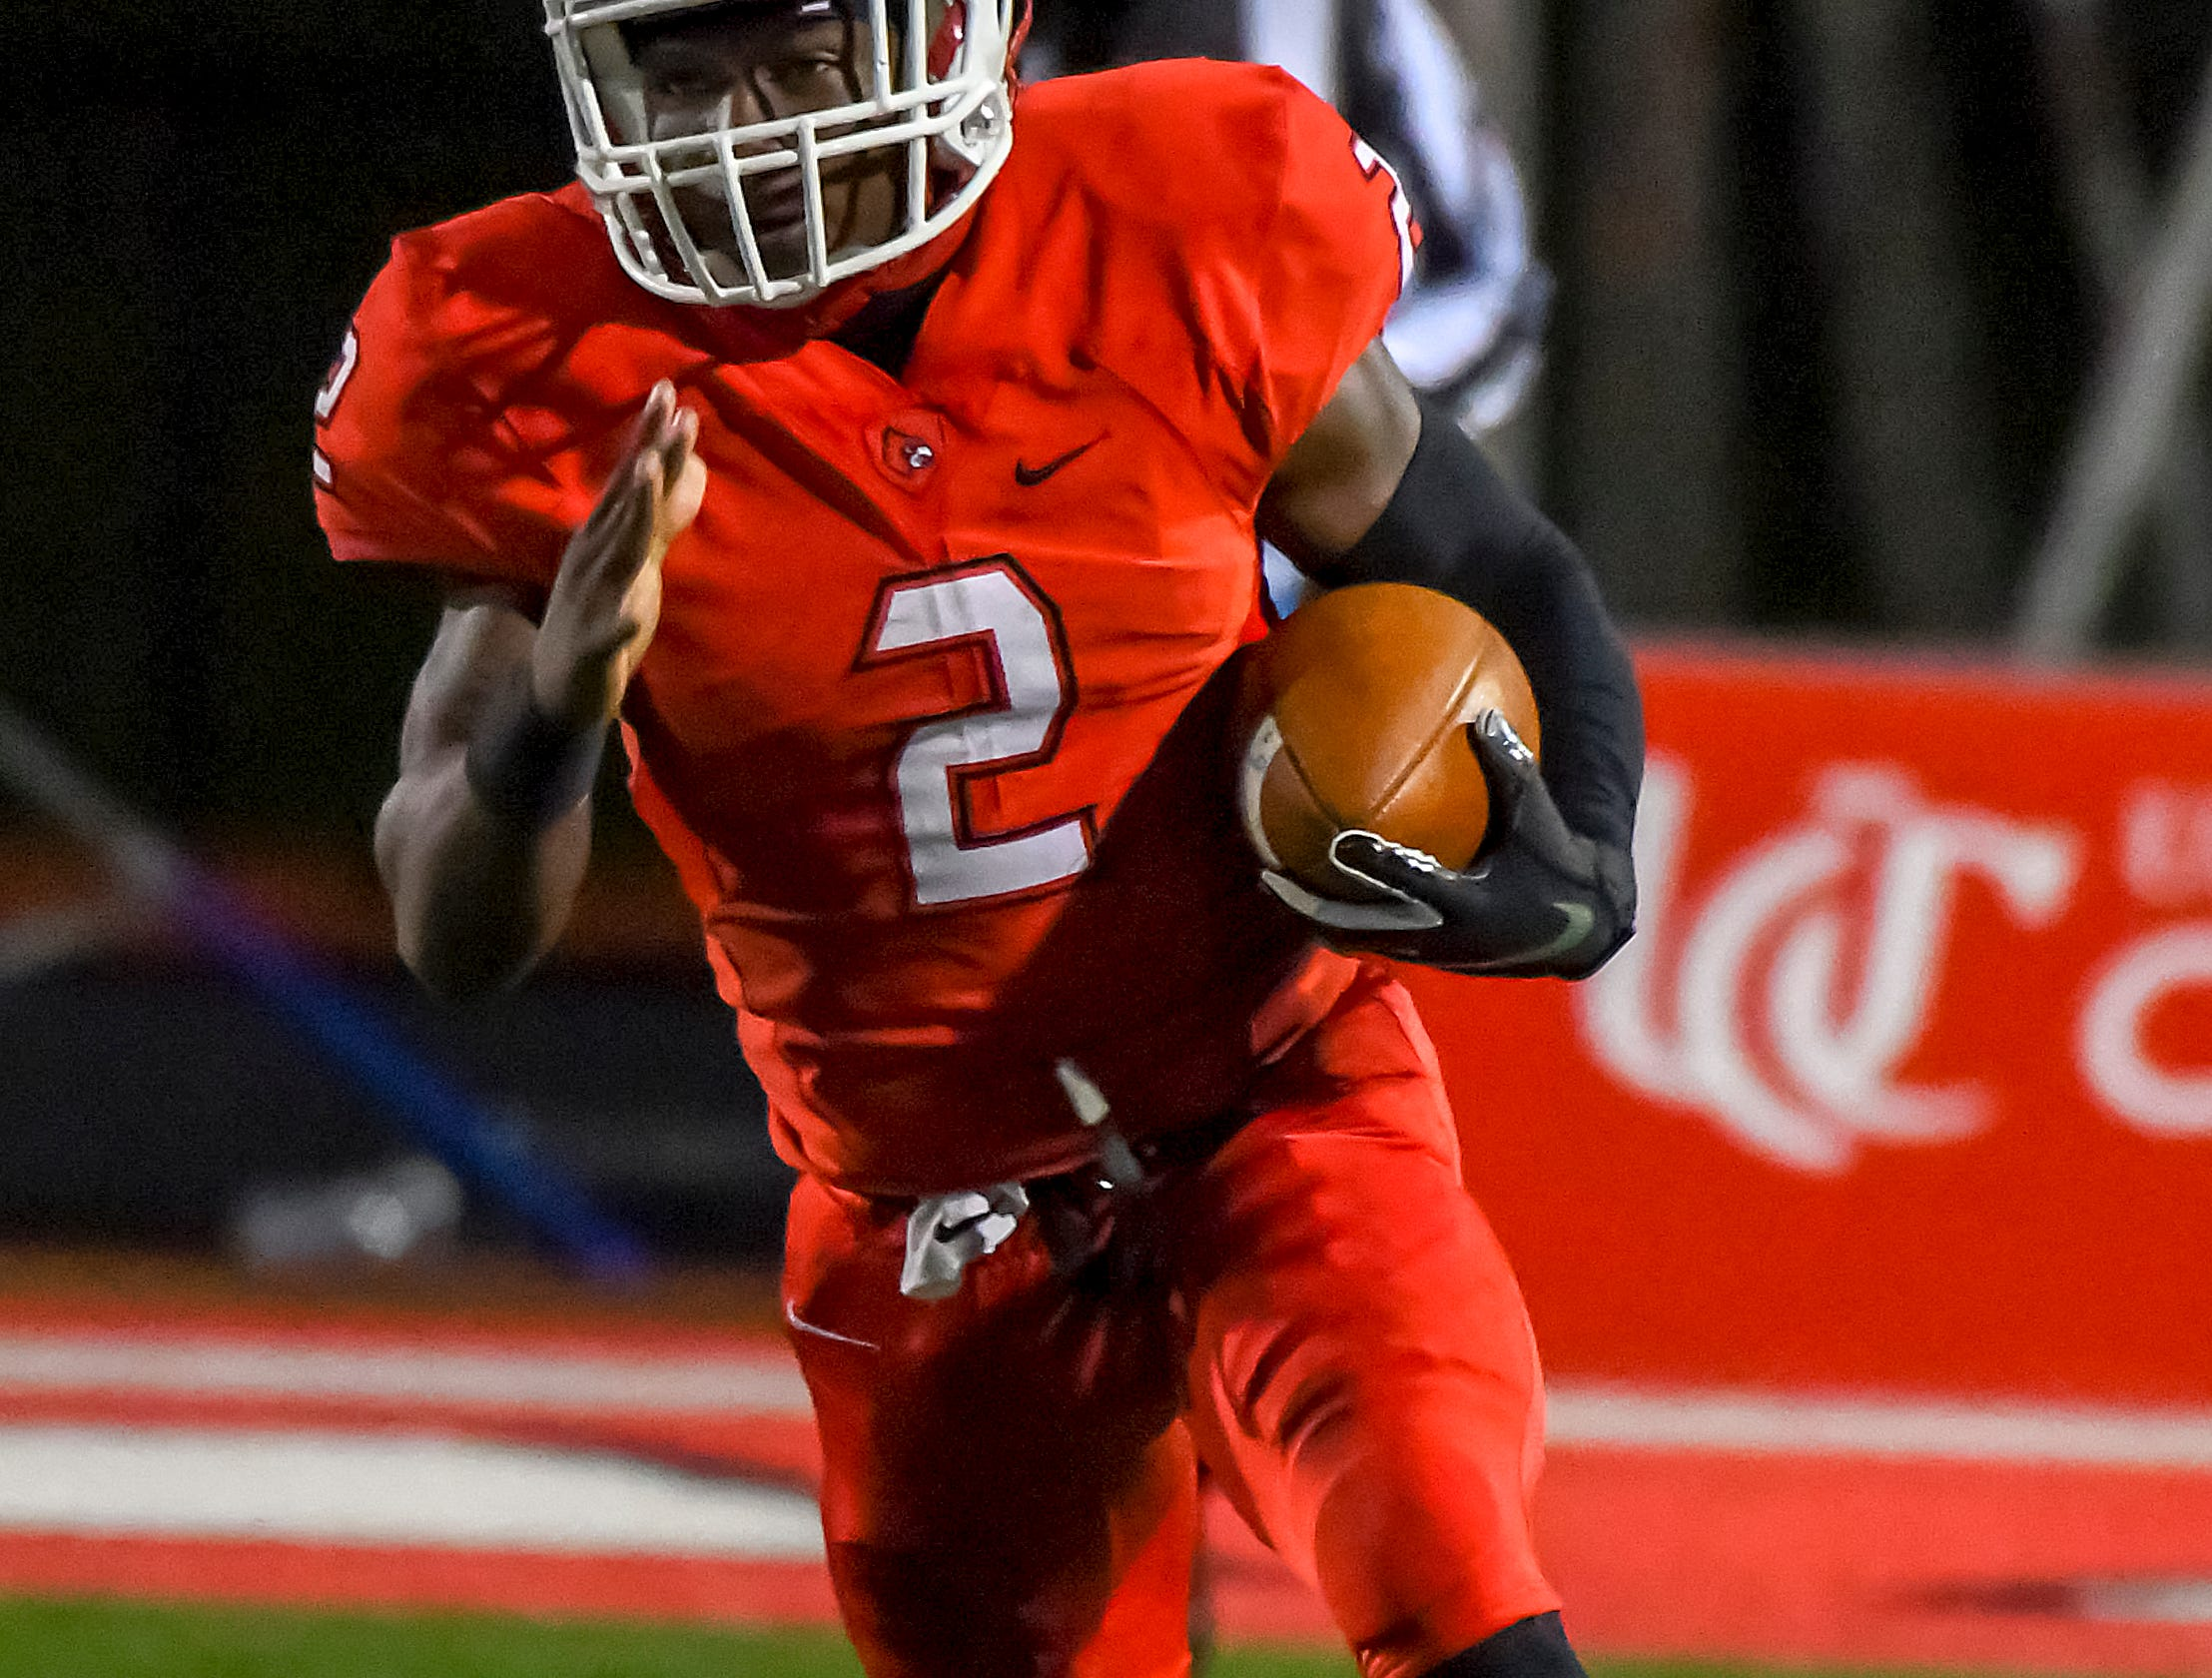 Deante Smith-Moore of Colerain runs the football for a touchdown against St. X in the OHSAA DI Region 4 Playoffs at Colerain High School,  Friday Nov. 2, 2018